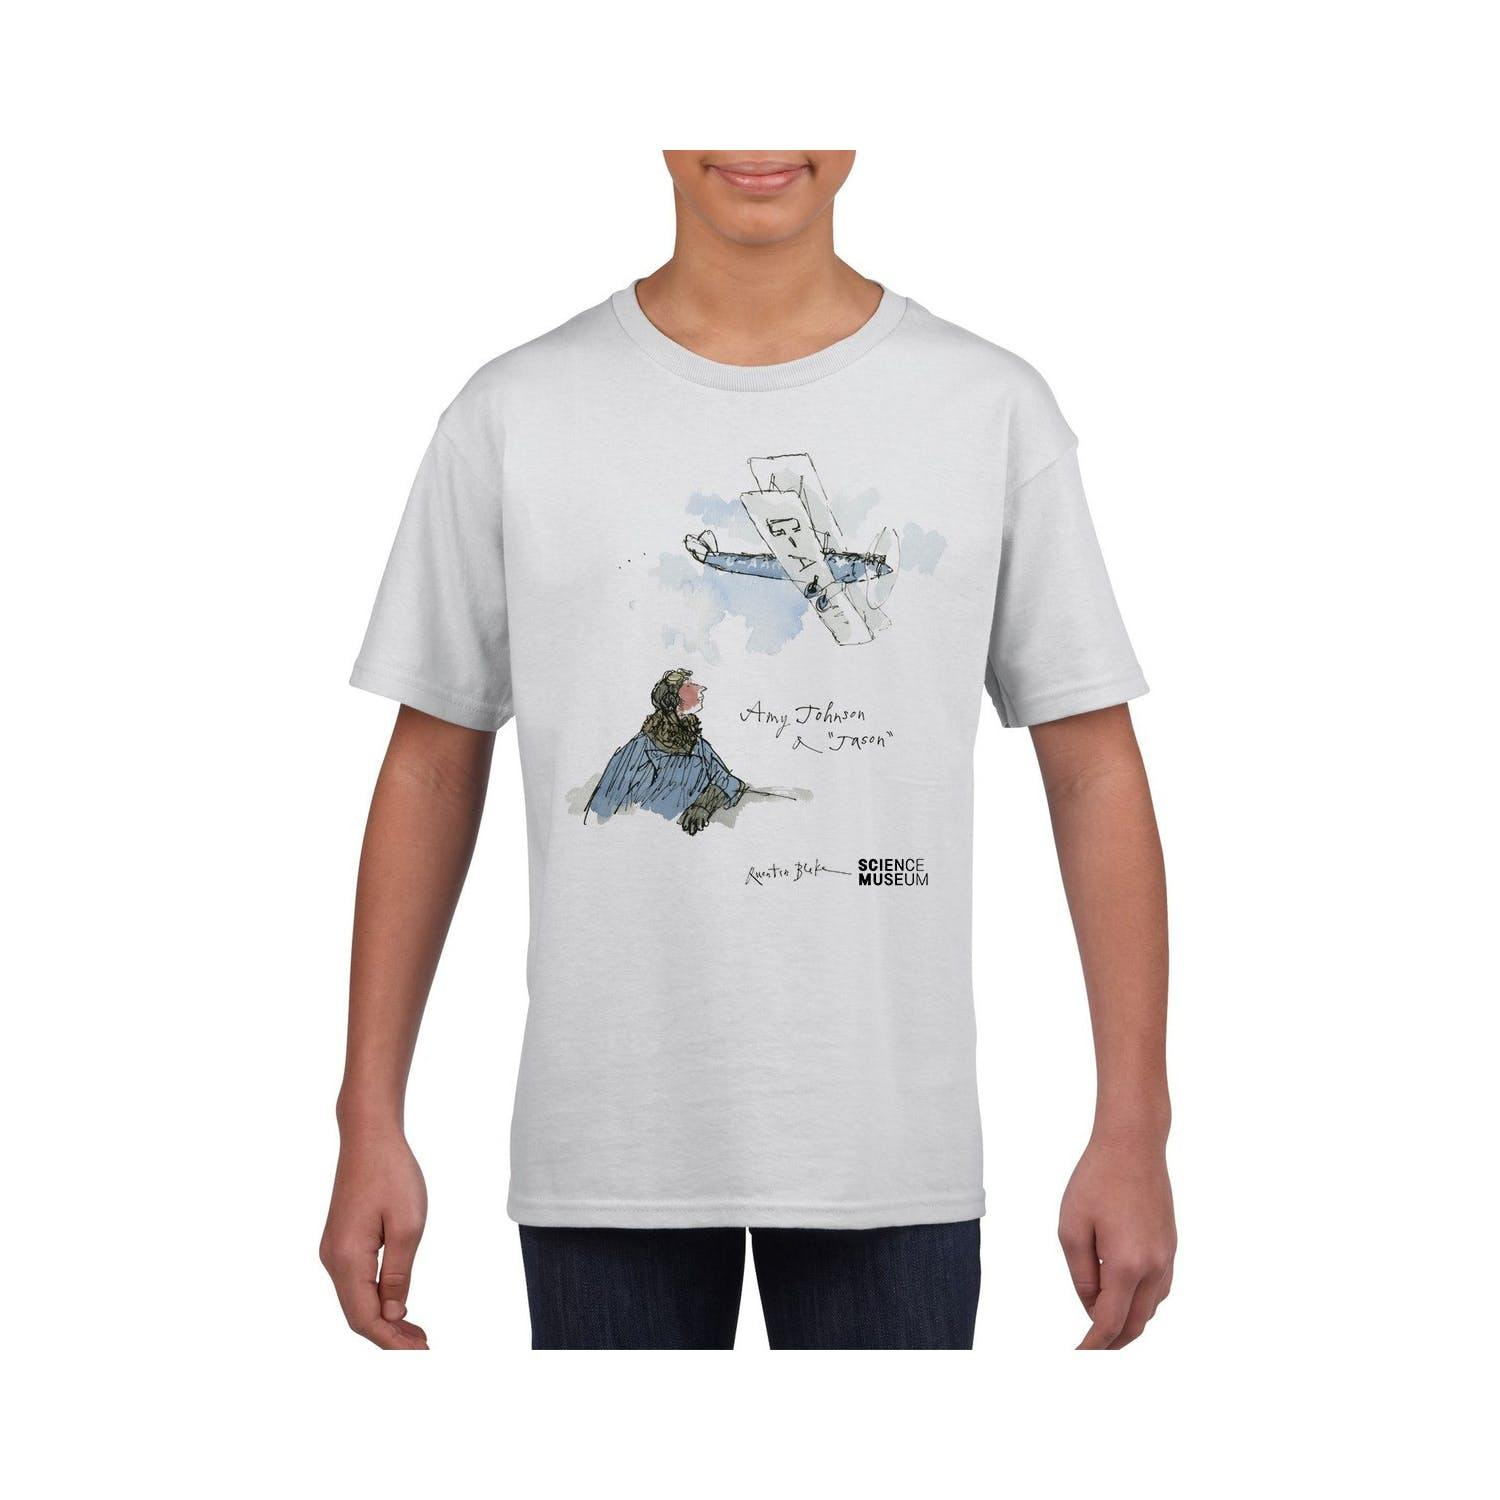 Science Museum Quentin Blake Kids T-shirt